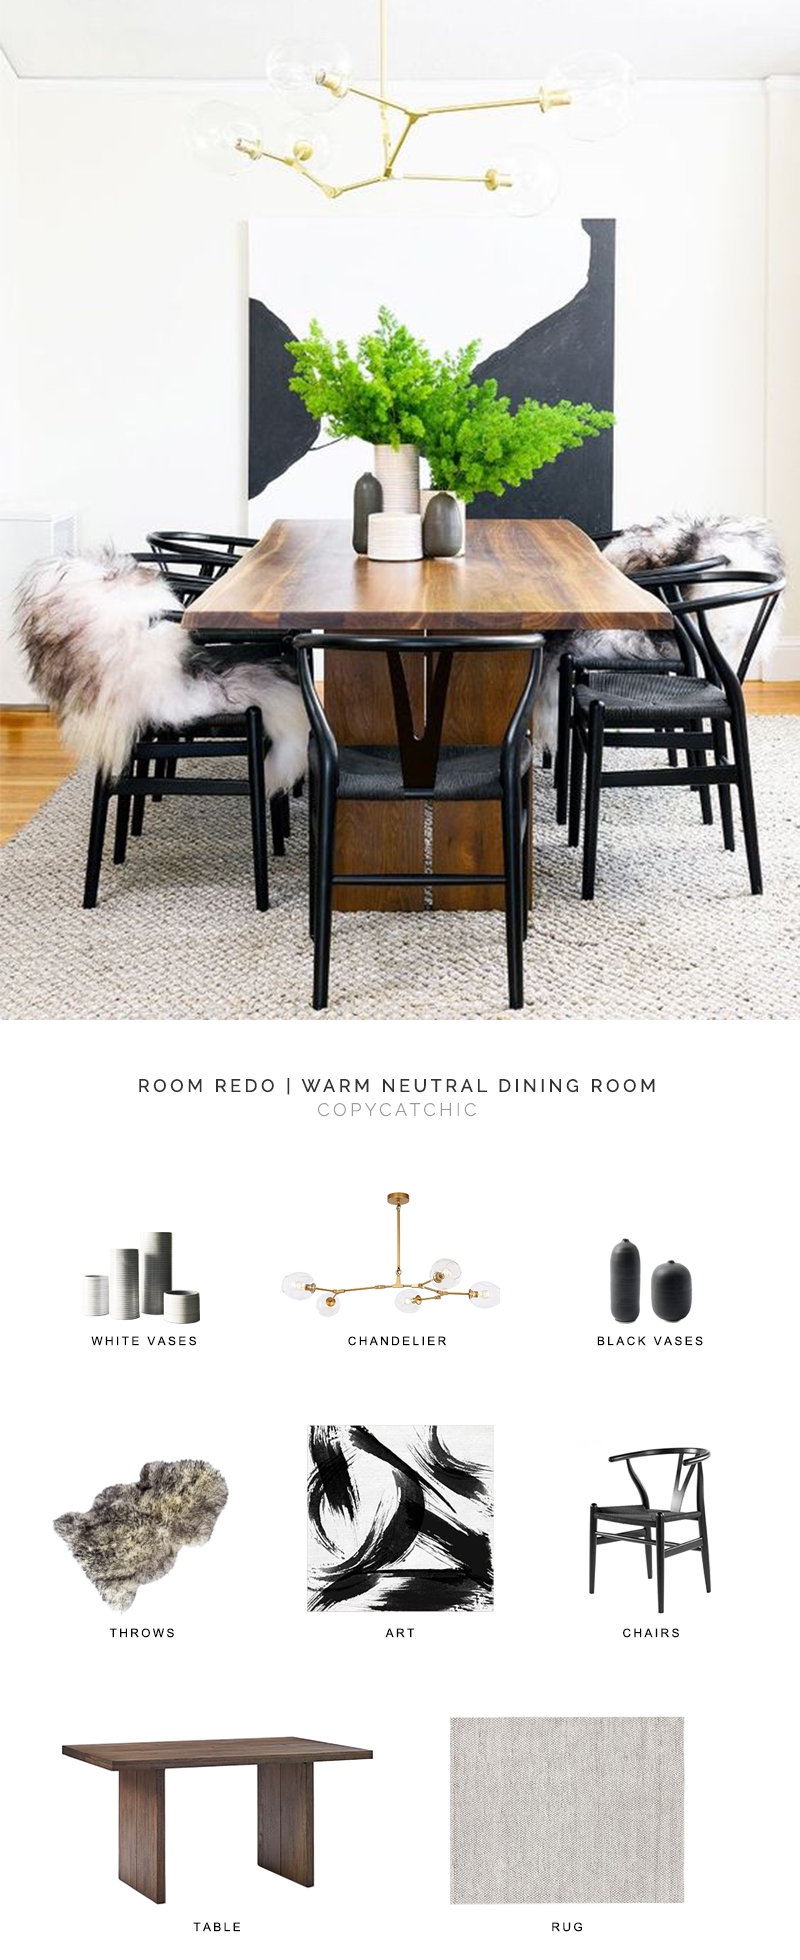 modern minimal dining room look for less, copycatchic luxe living for less, budget home decor and design, daily finds, home trends, sales, budget travel and room redos